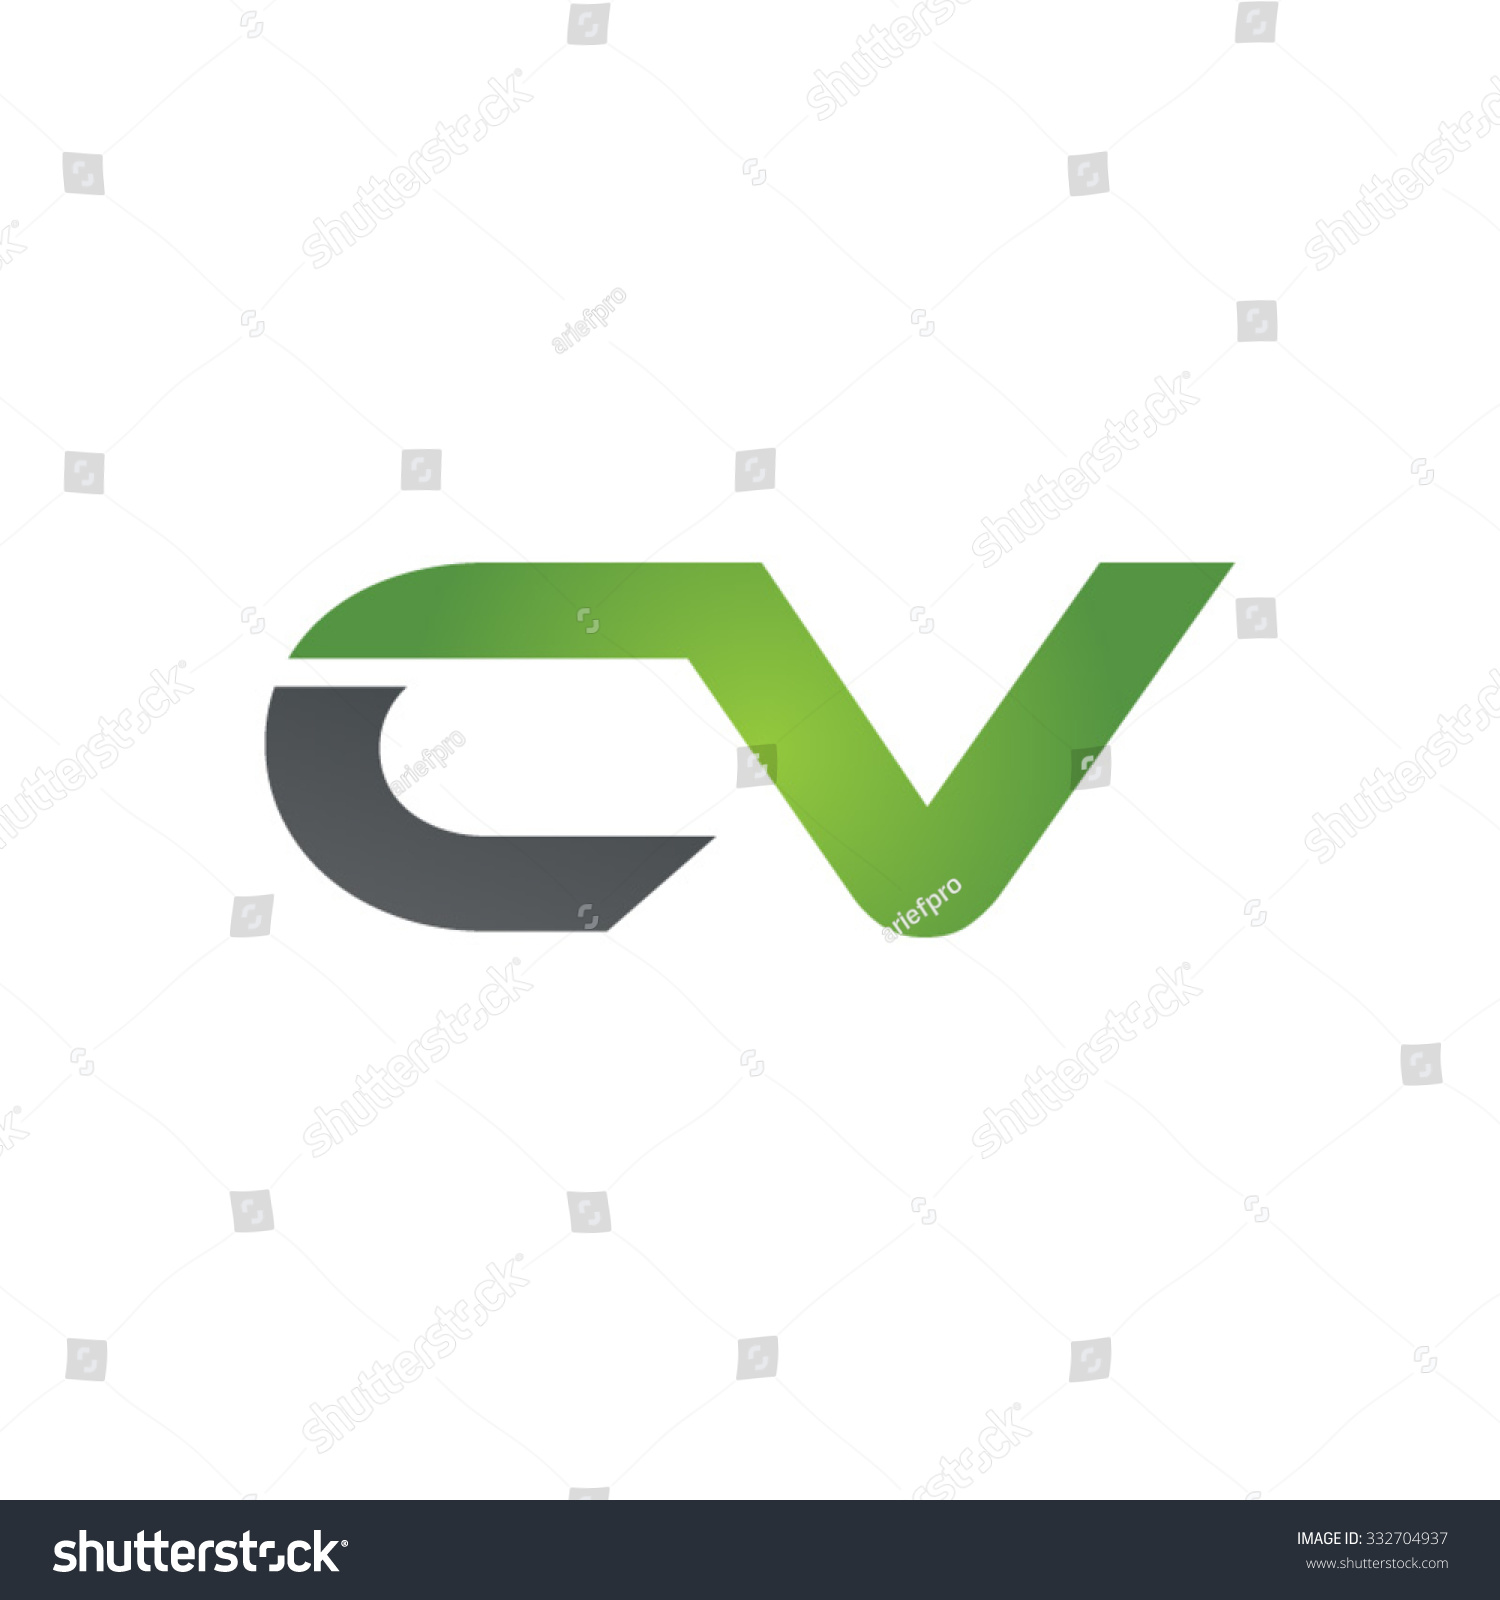 cv company linked letter logo green stock vector